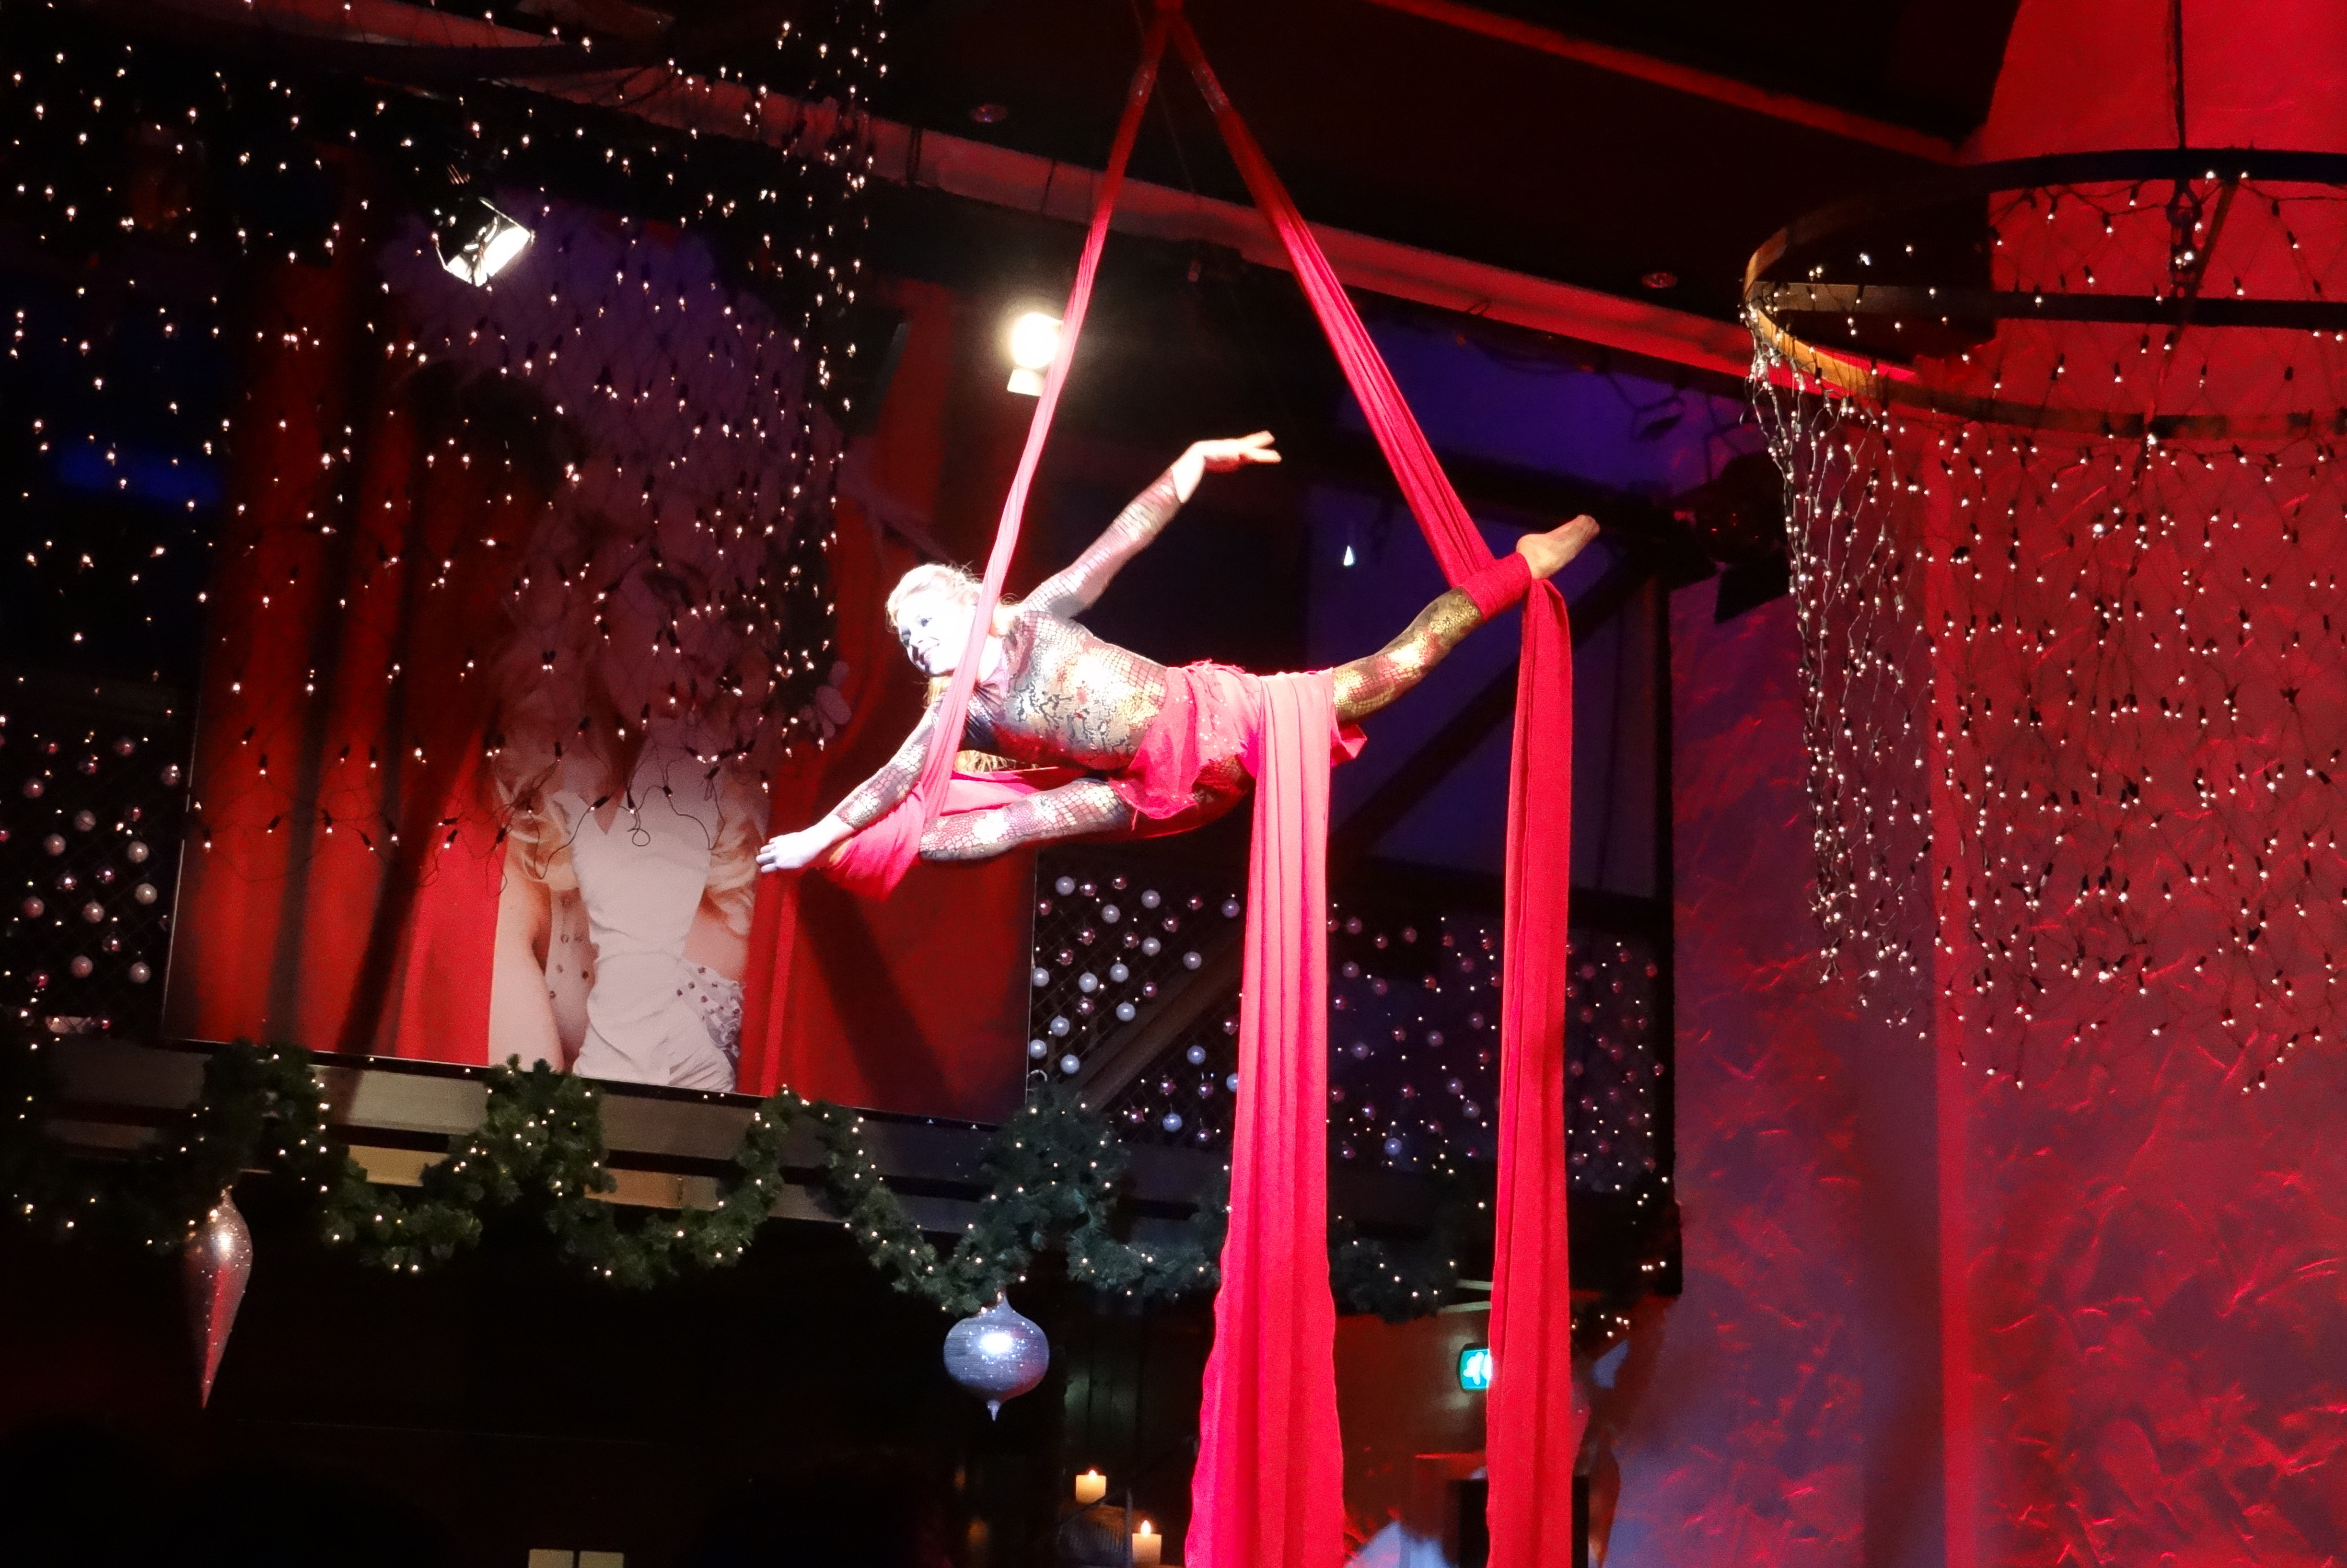 Aerial Acts & more!